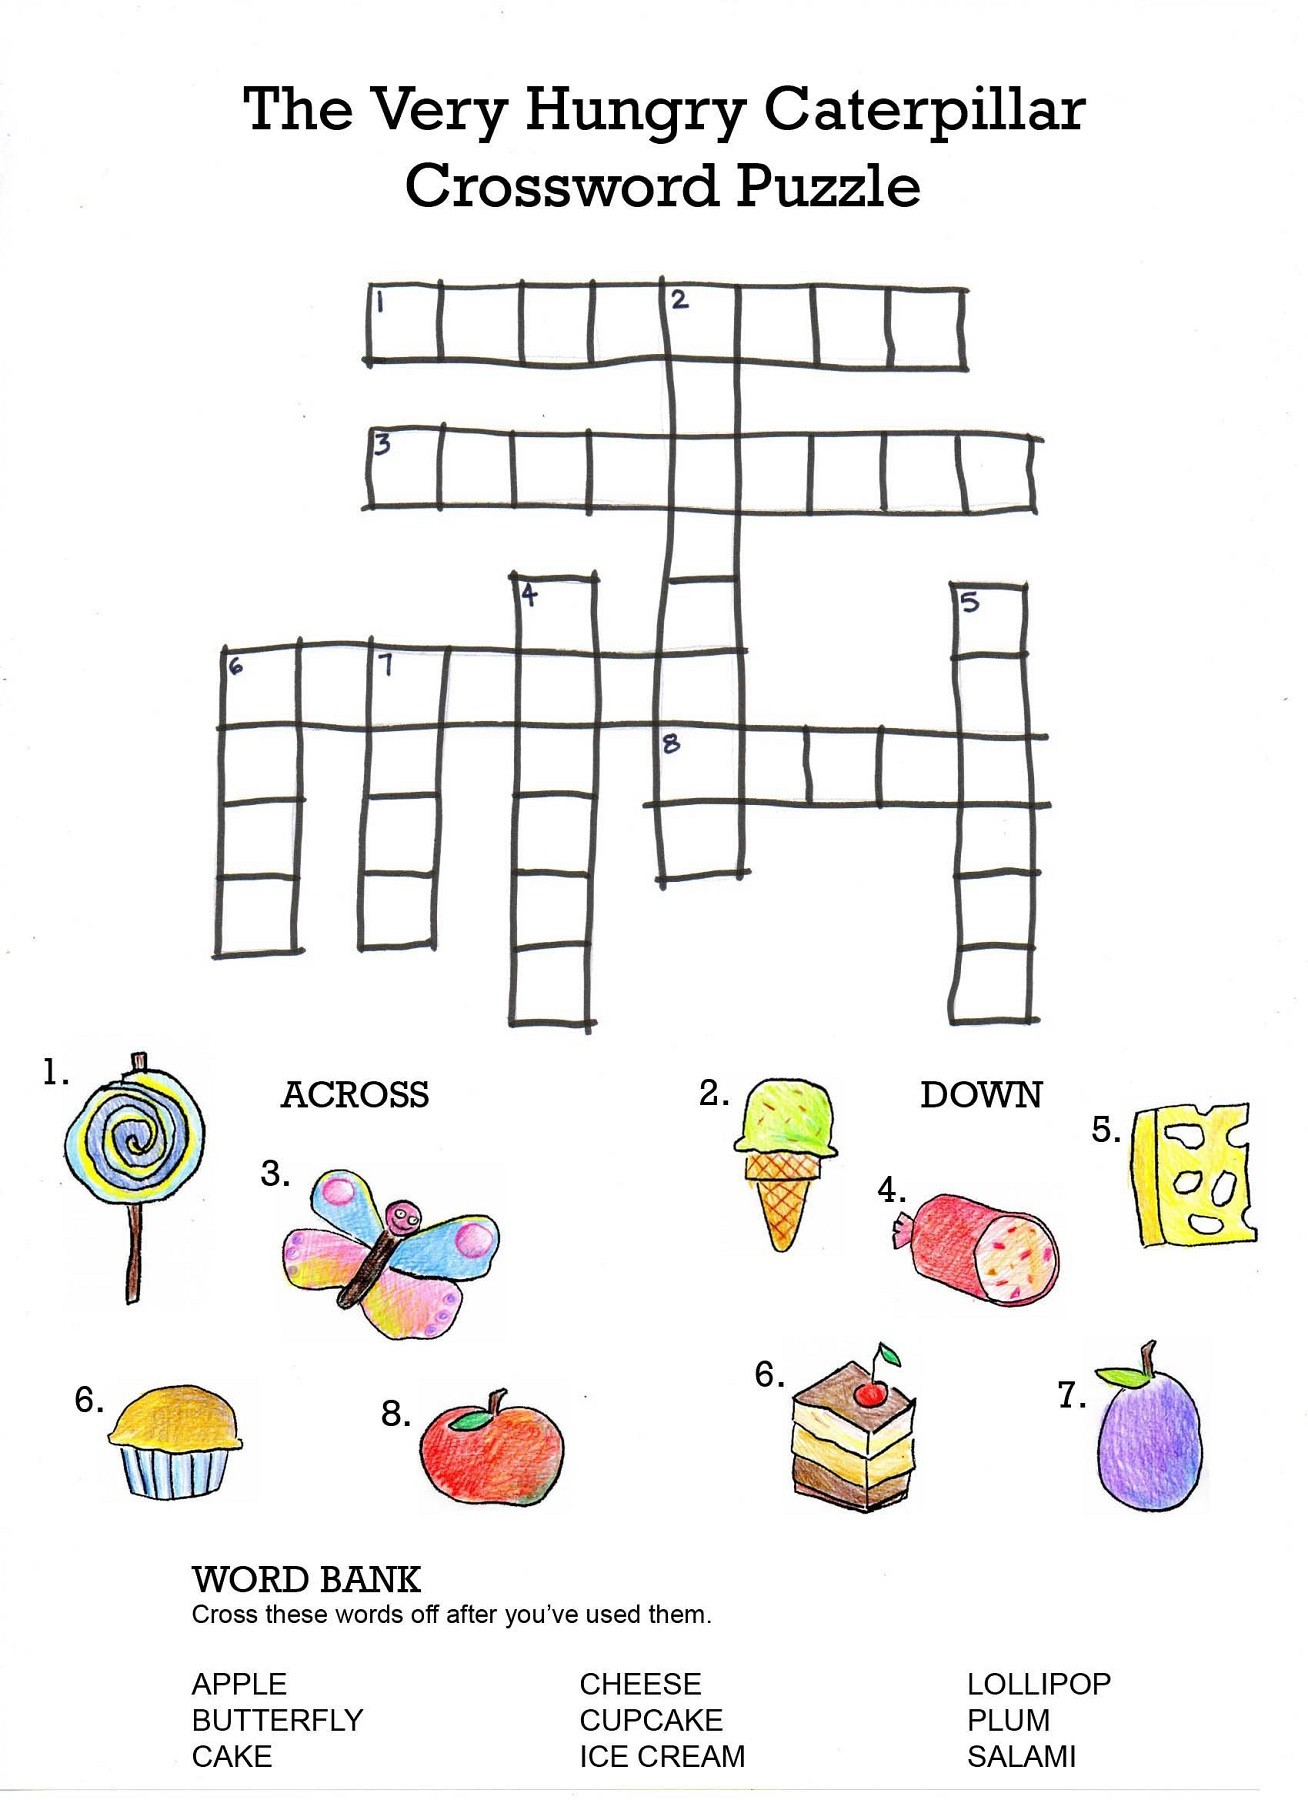 photograph regarding Easy Crossword Puzzles Printable called Crossword Puzzles For Youngsters - Ideal Coloring Internet pages For Young children